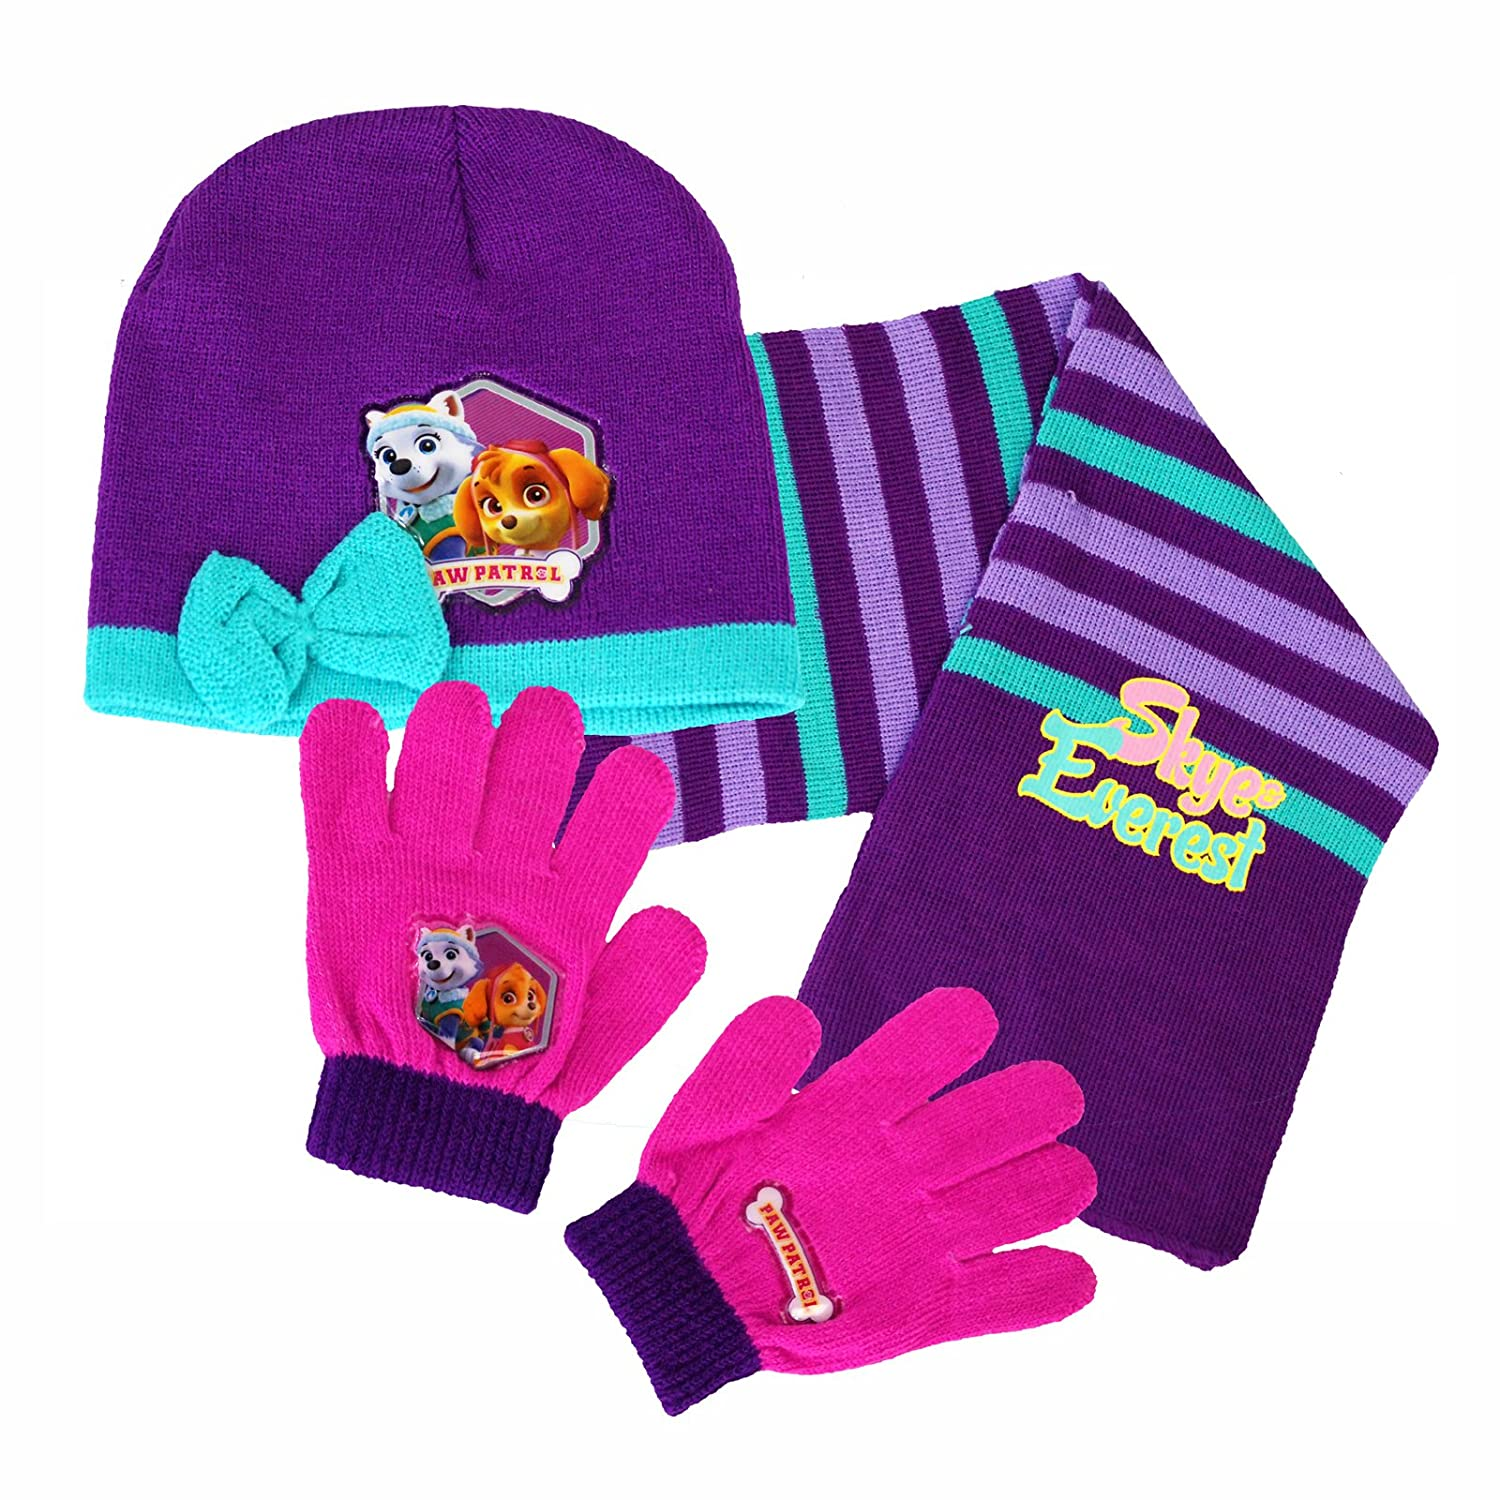 Nickelodeon® Official Paw Patrol Girls Boys Unisex Hat, Glove & Scarf Set featuring Paw Patrol Characters Warm Winter Essentials Licensed Merchandise.